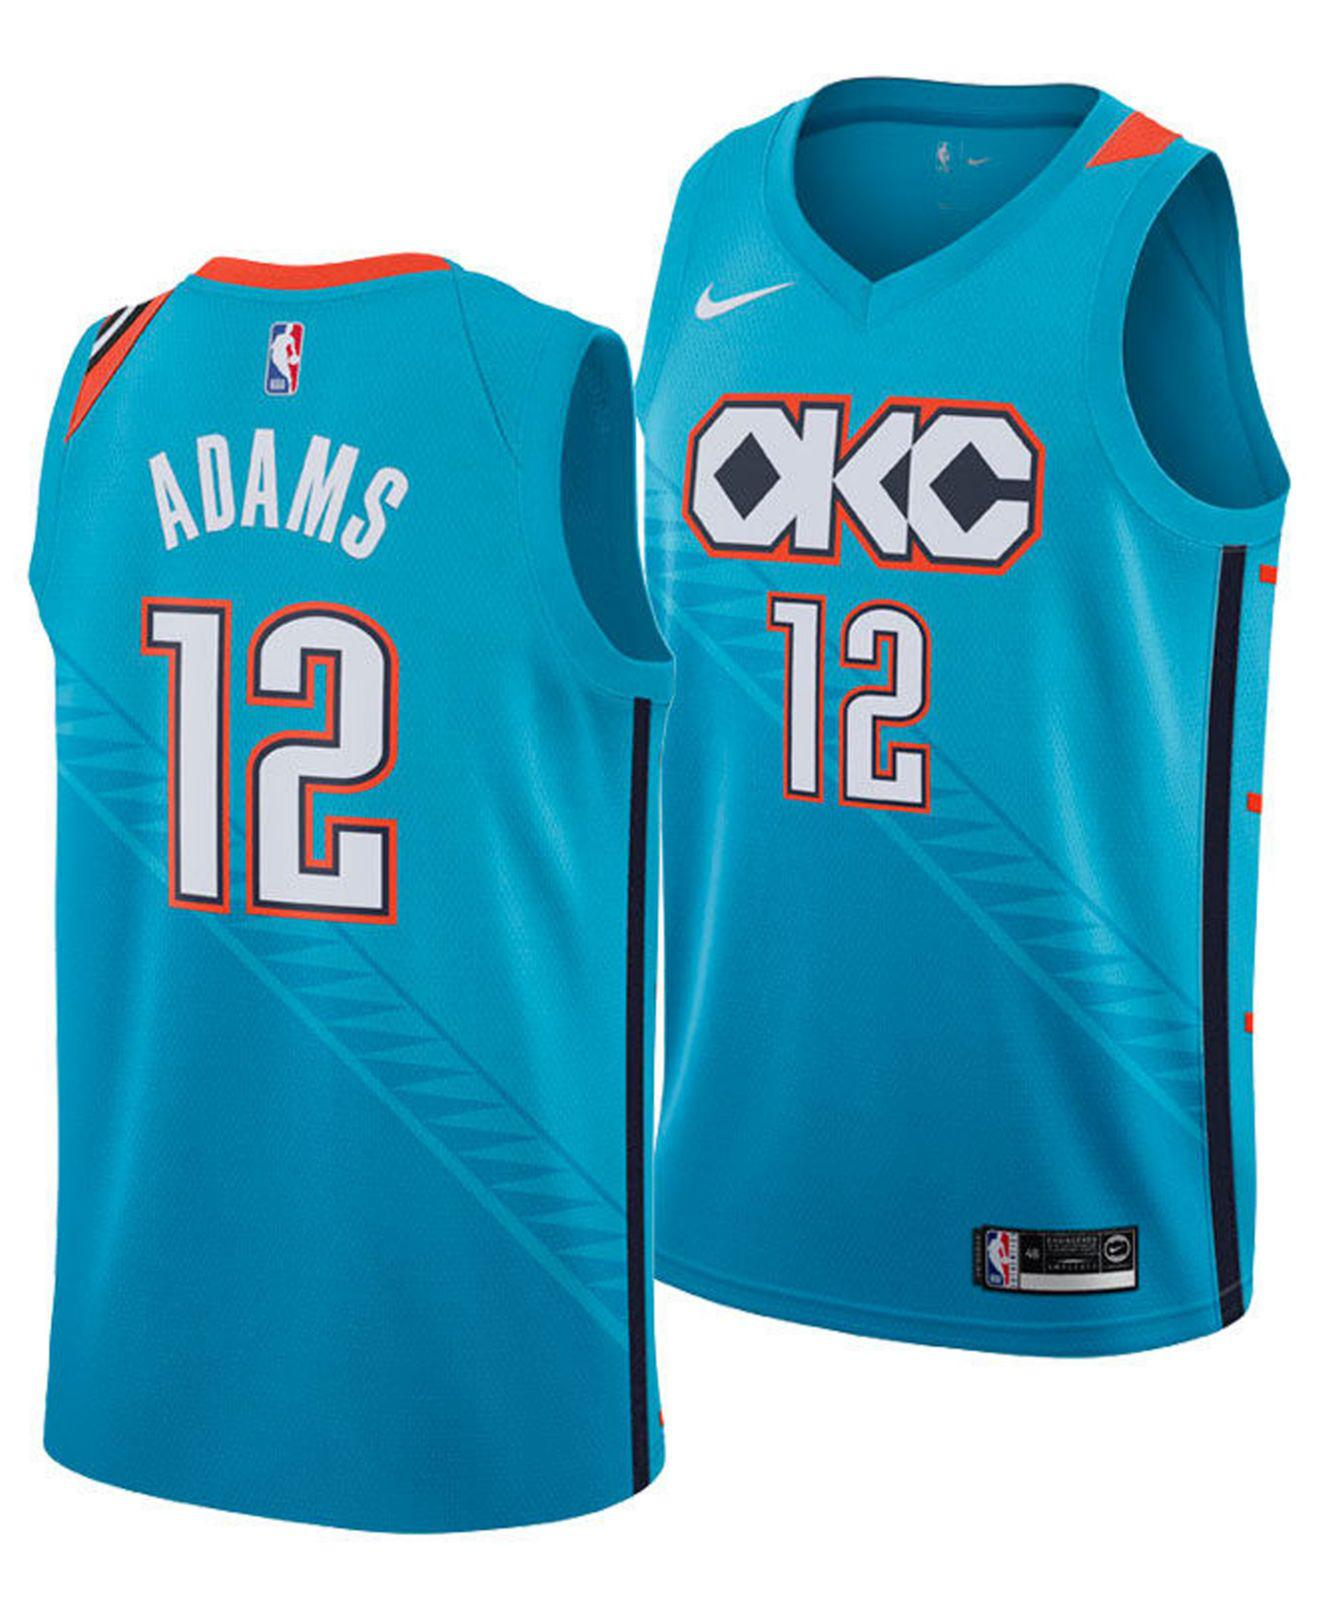 check out dcaa3 d6619 adams oklahoma city thunder jersey